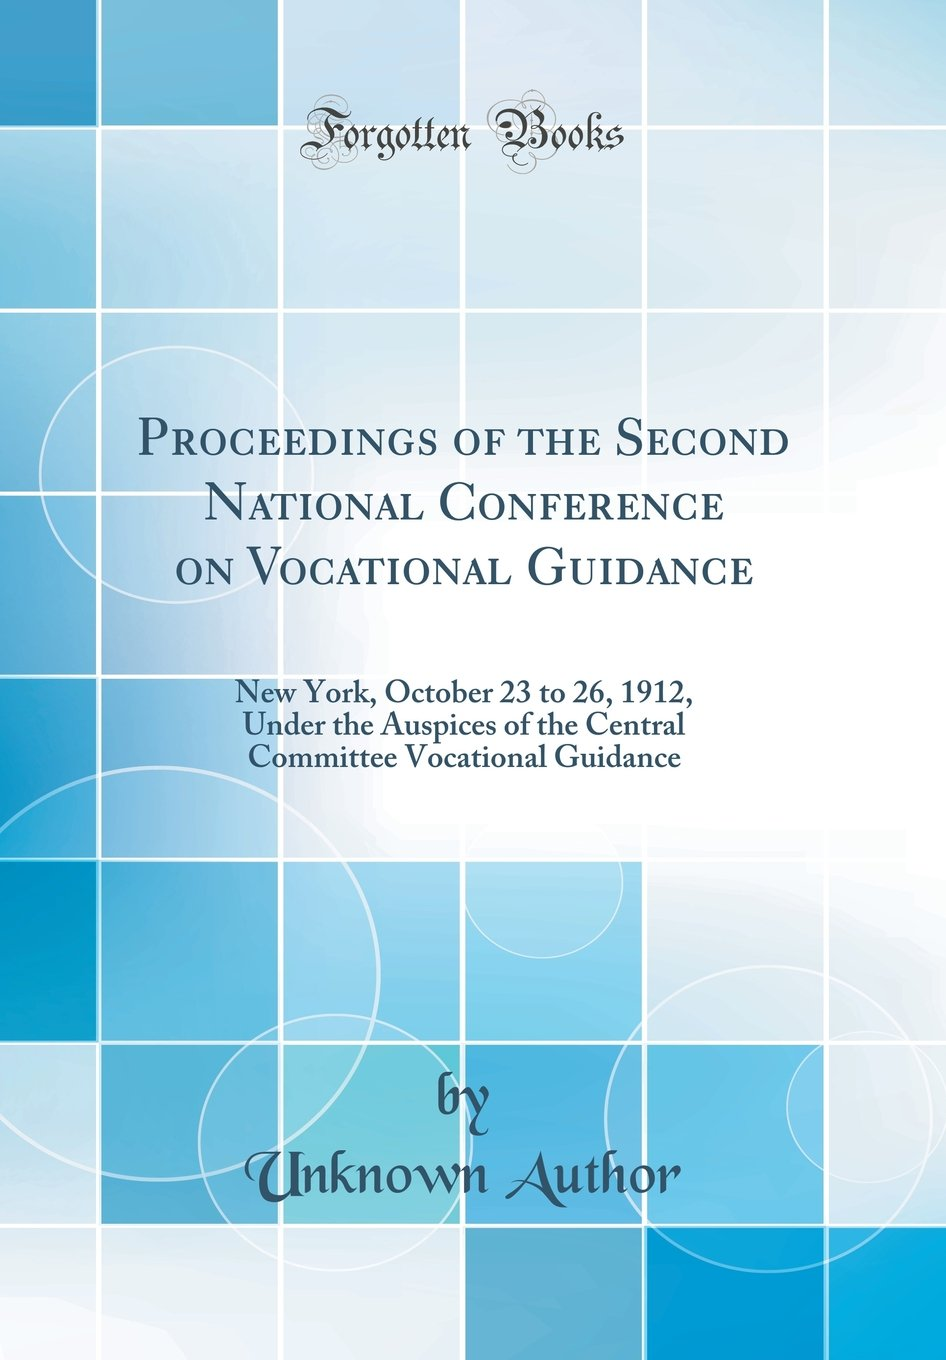 Download Proceedings of the Second National Conference on Vocational Guidance: New York, October 23 to 26, 1912, Under the Auspices of the Central Committee Vocational Guidance (Classic Reprint) PDF